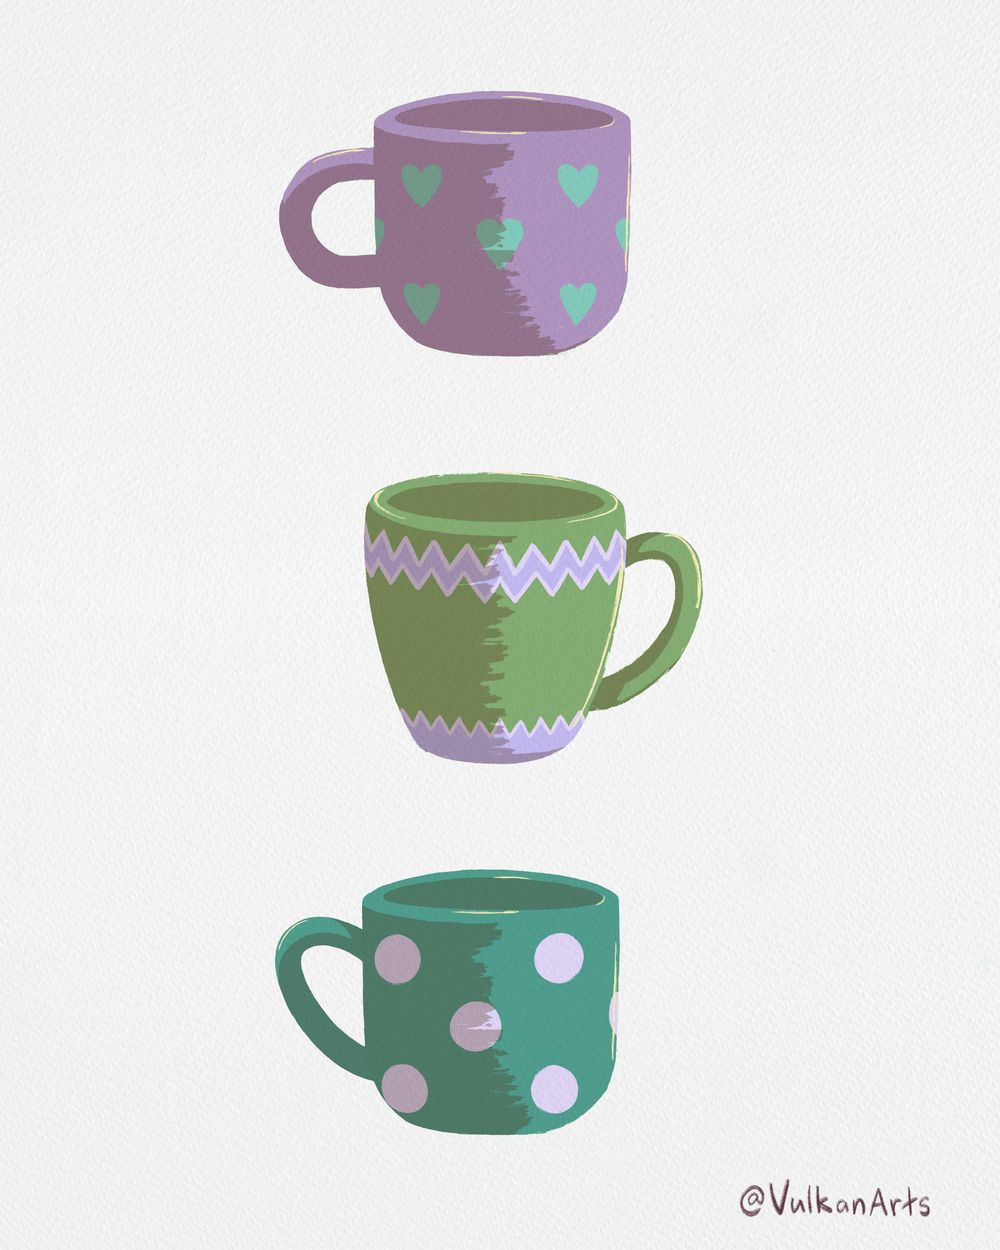 Bugs and mugs - image 6 - student project